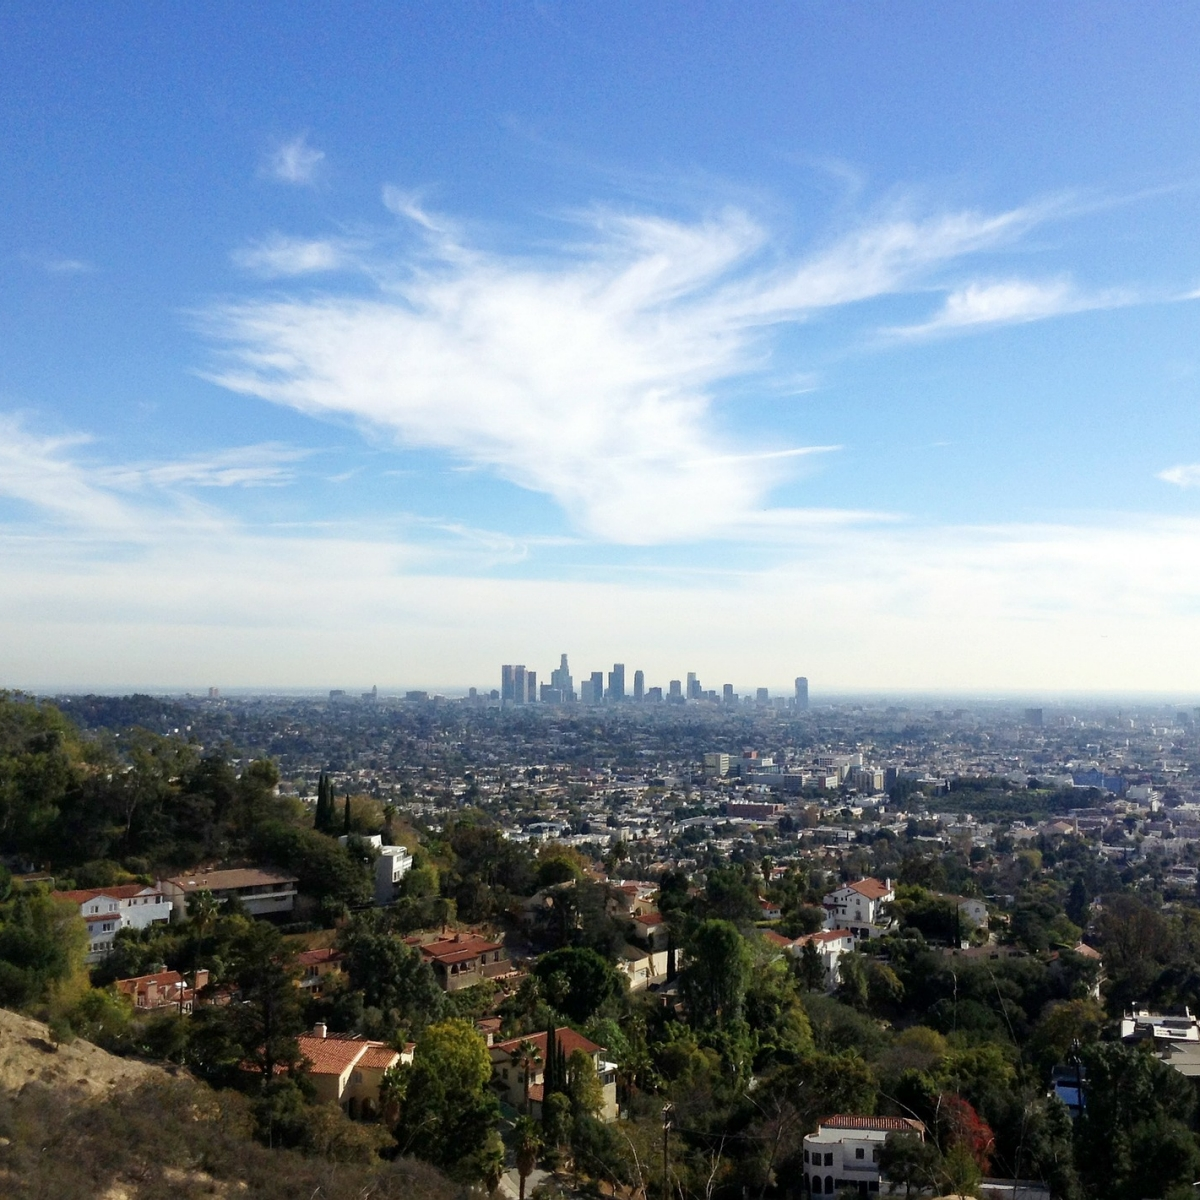 Los Angeles skyline in the distance